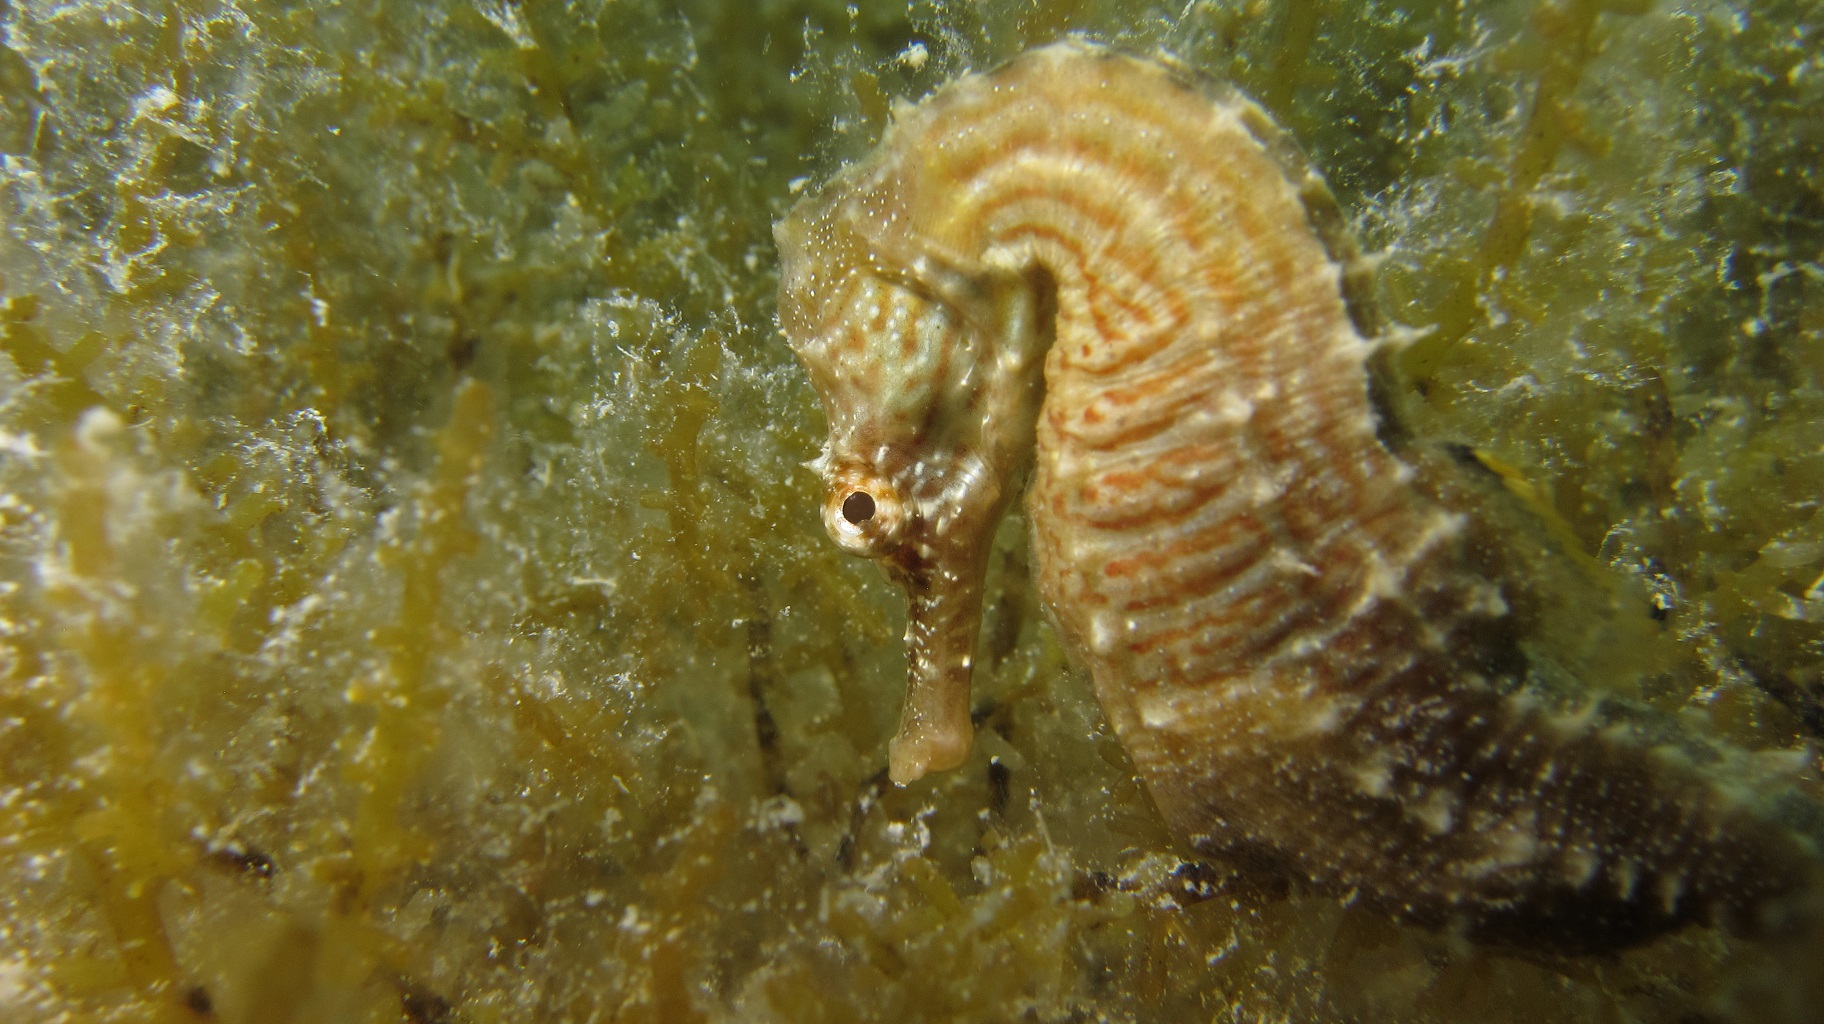 One of the many seahorses found in Sweetings Pond